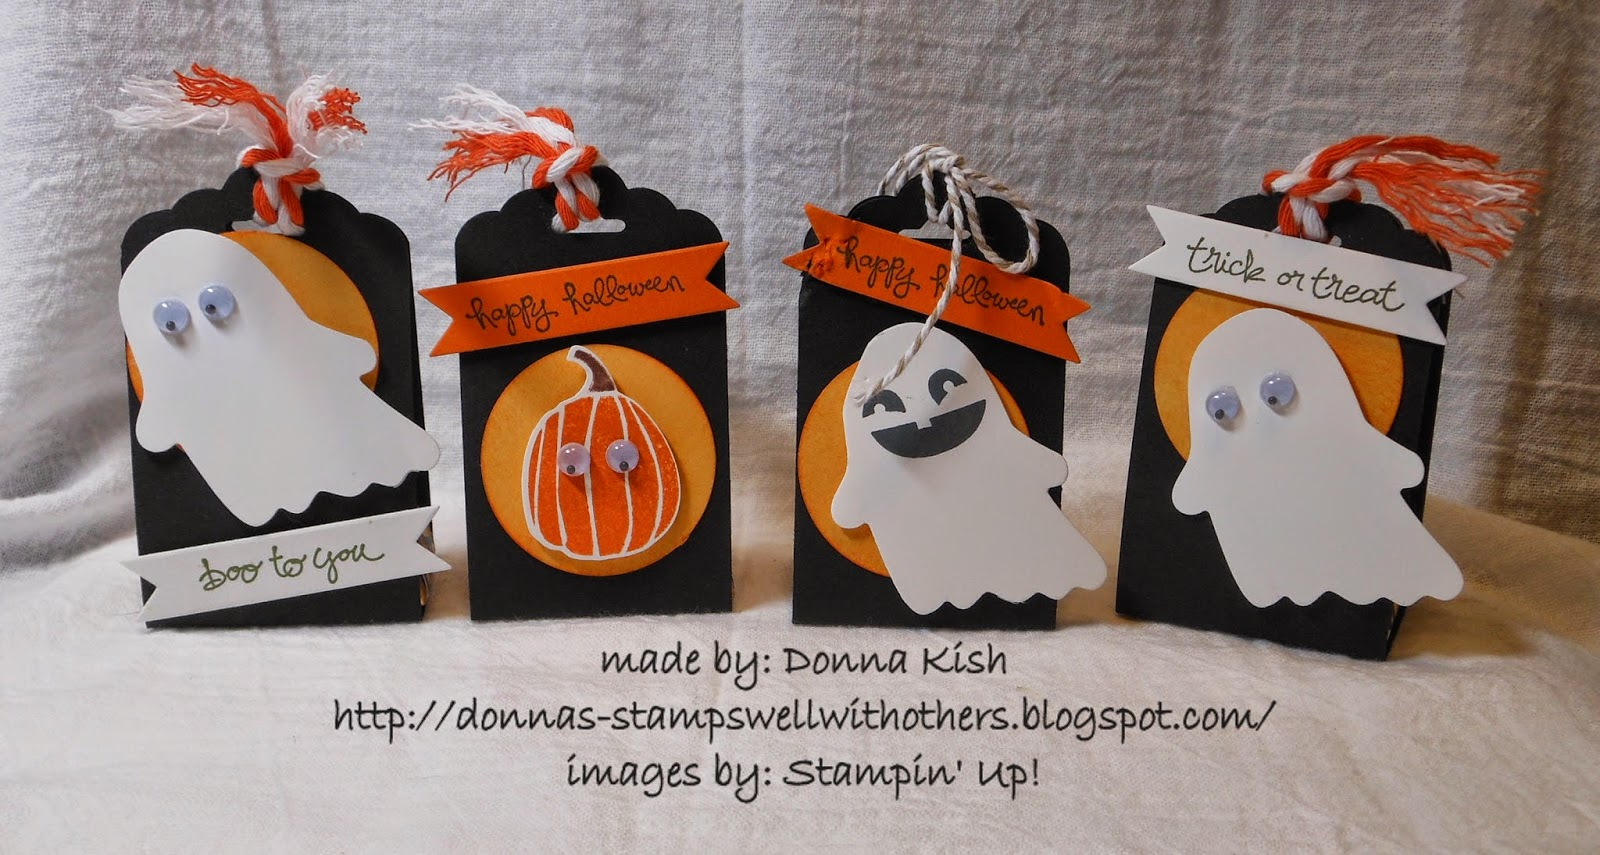 http://donnas-stampswellwithothers.blogspot.com/2014/10/halloween-nugget-holder.html